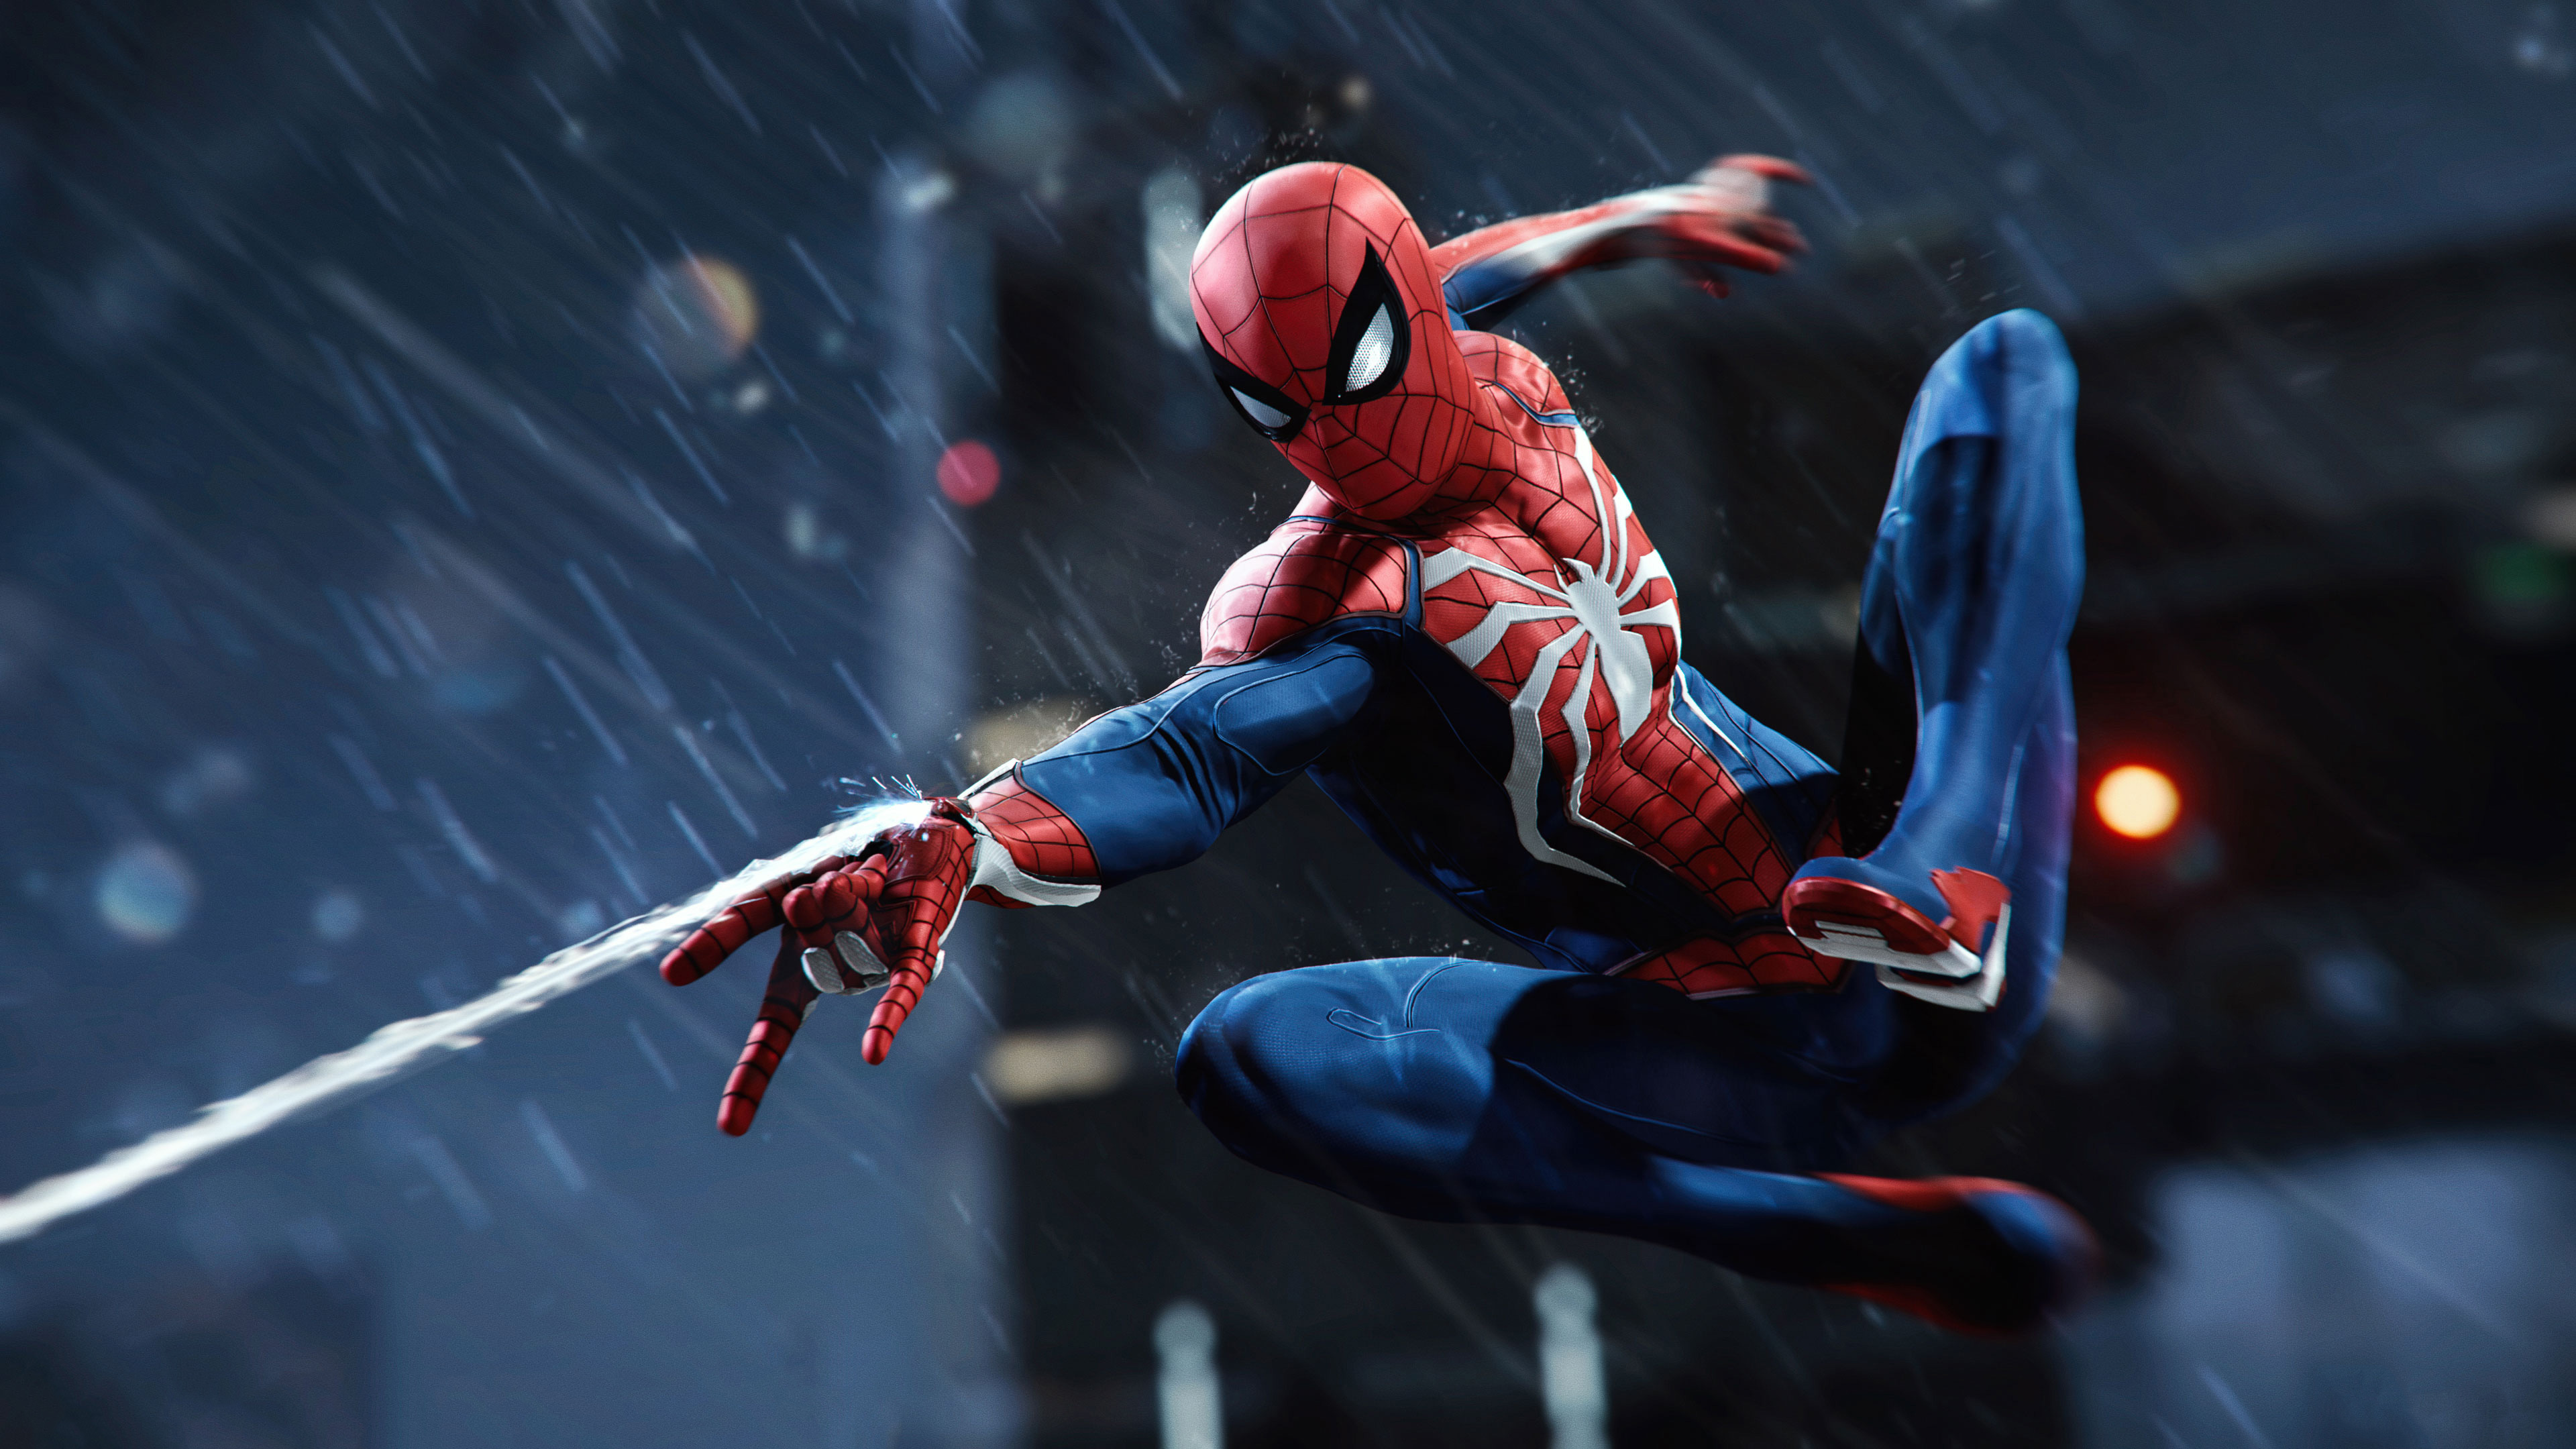 Spider Man PS4 4k Ultra HD Wallpaper Background Image 3840x2160